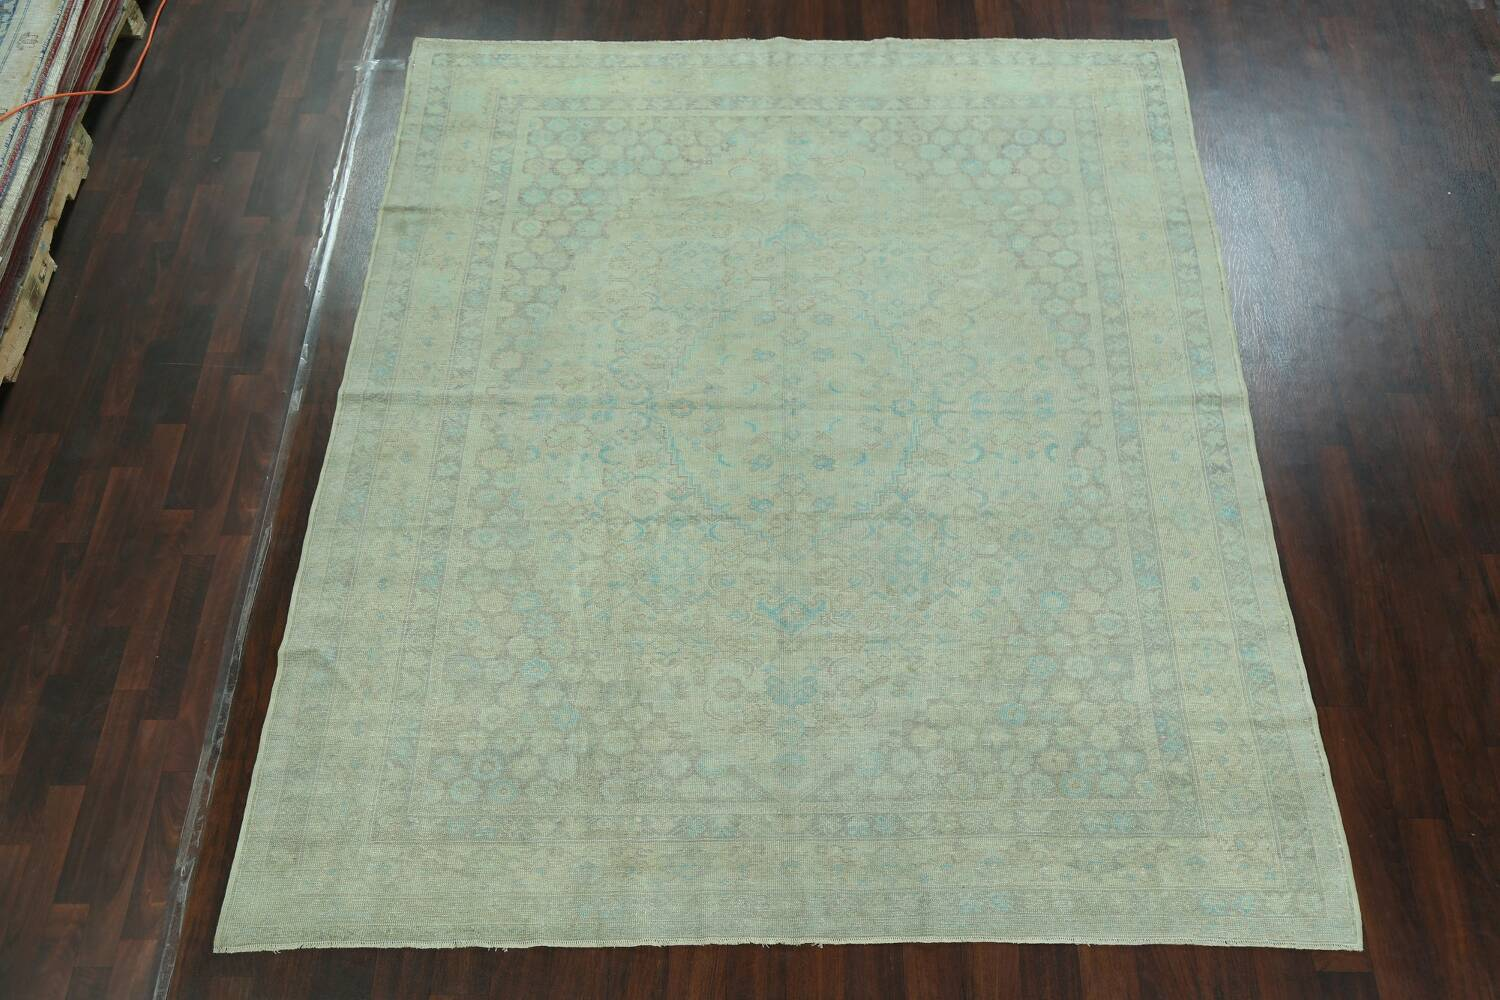 Antique 100% Vegetable Dye Sultanabad Persian Area Rug 8x9 image 2